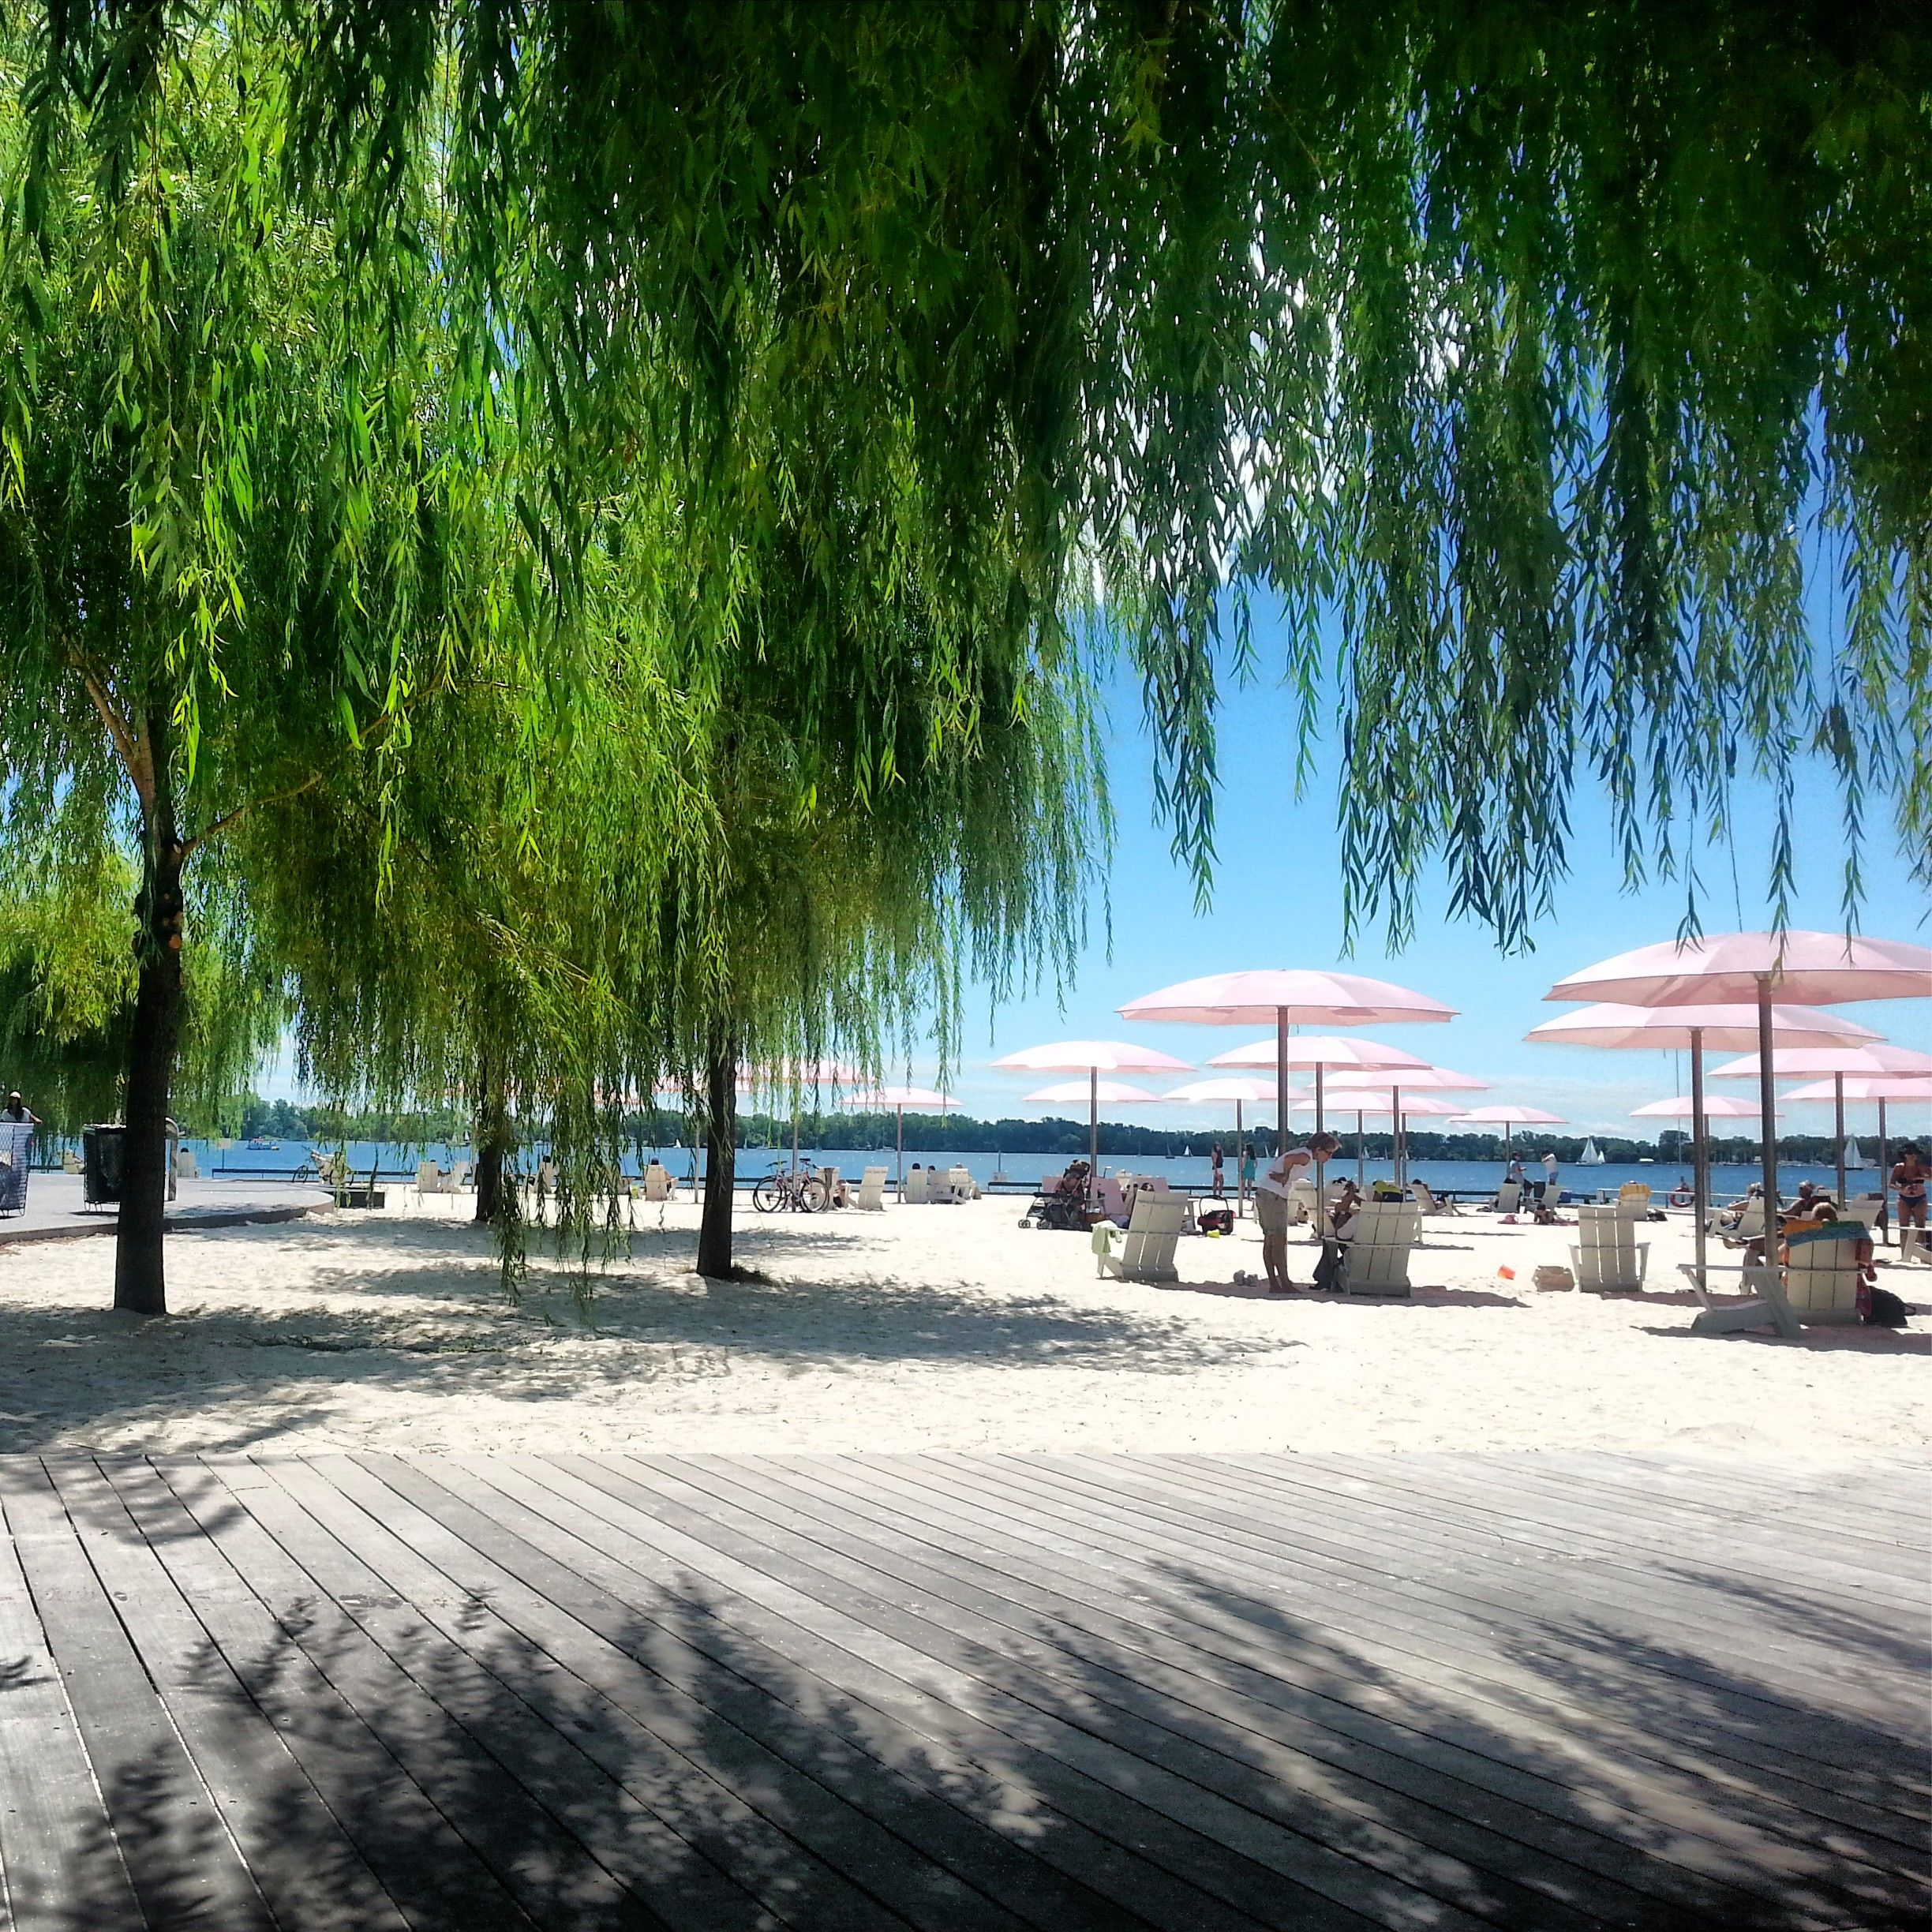 Best Quiet Places To Travel: The Quiet Little Boardwalk By Sugar #Beach In #Toronto Had